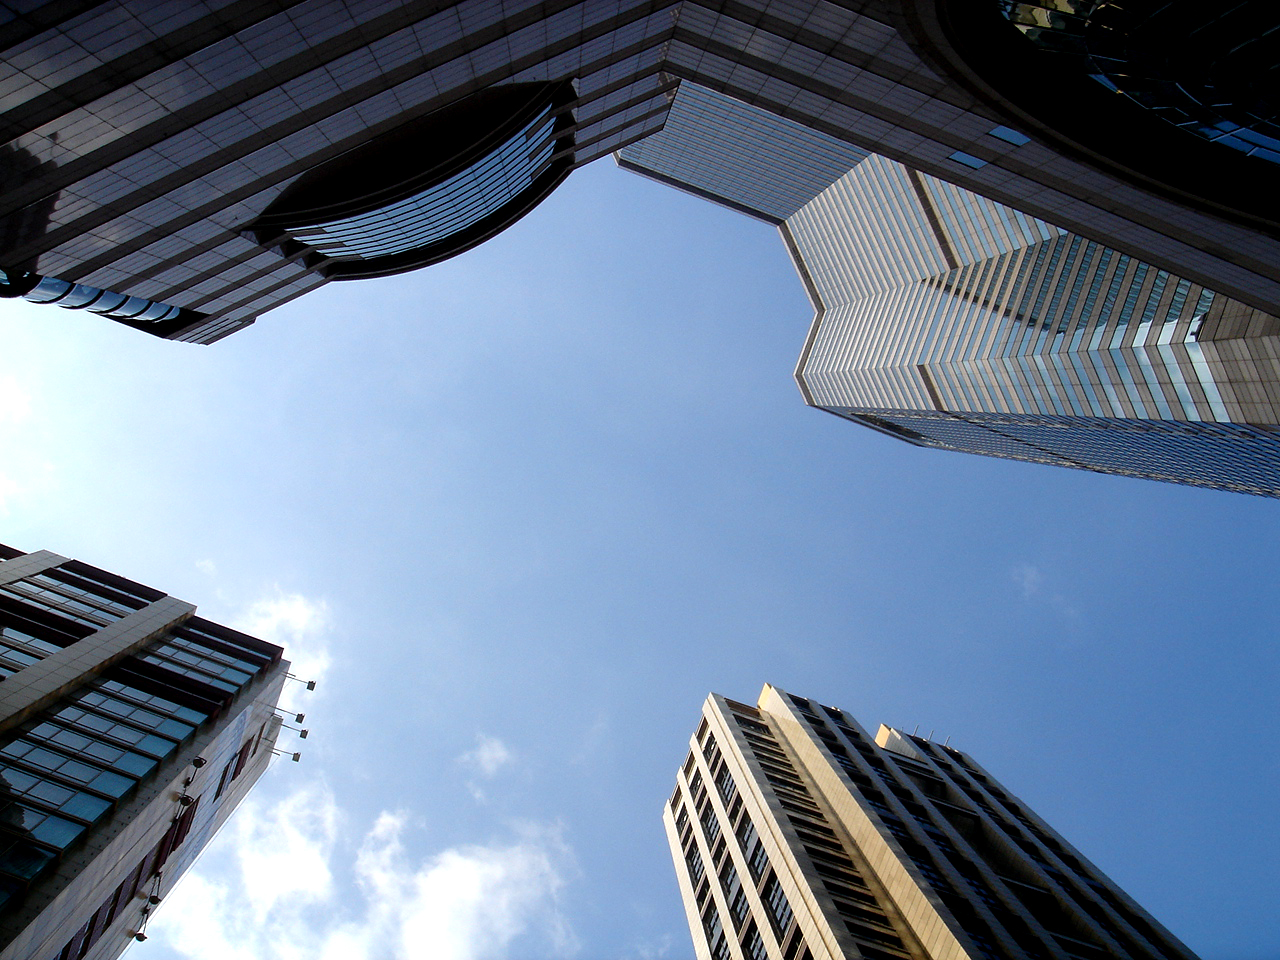 Prepping for Wider REITs ETF Sector Adoption